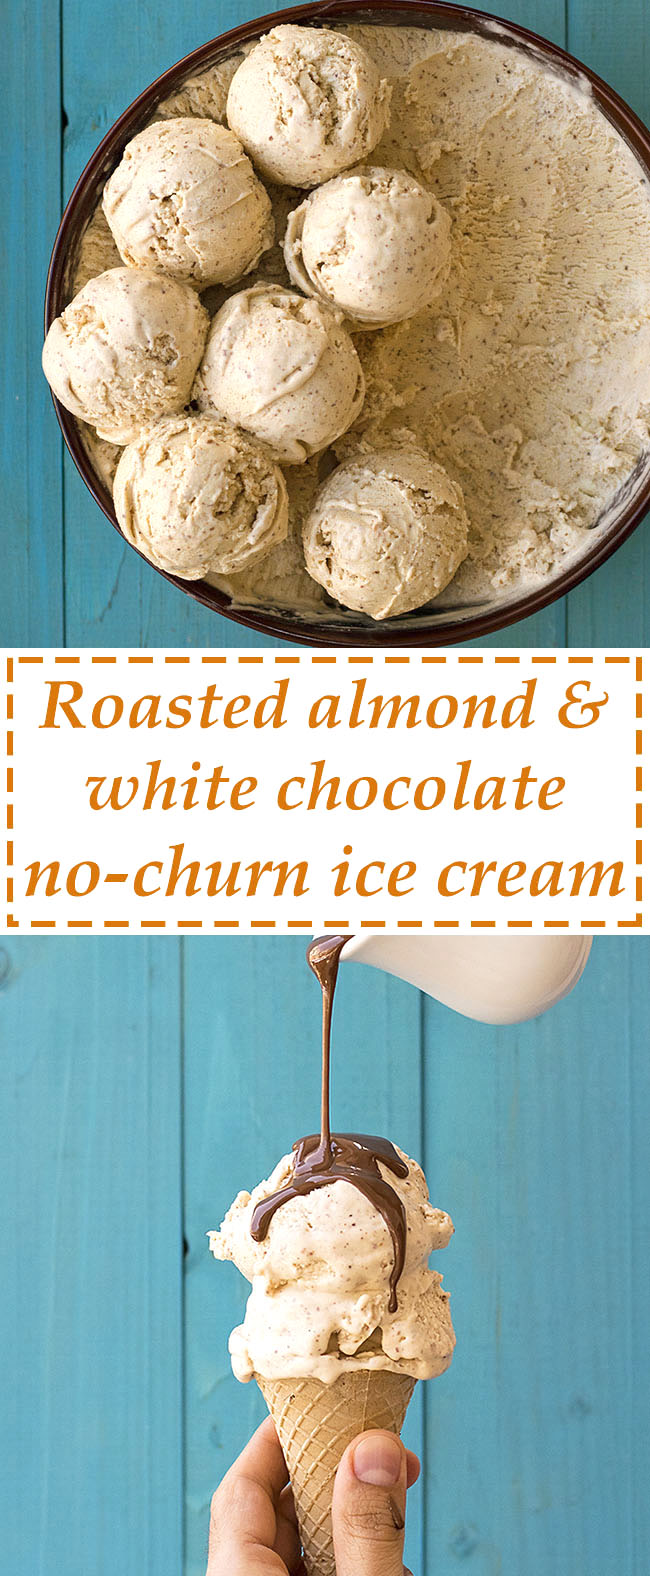 Roasted almond & white chocolate no-churn ice cream 7